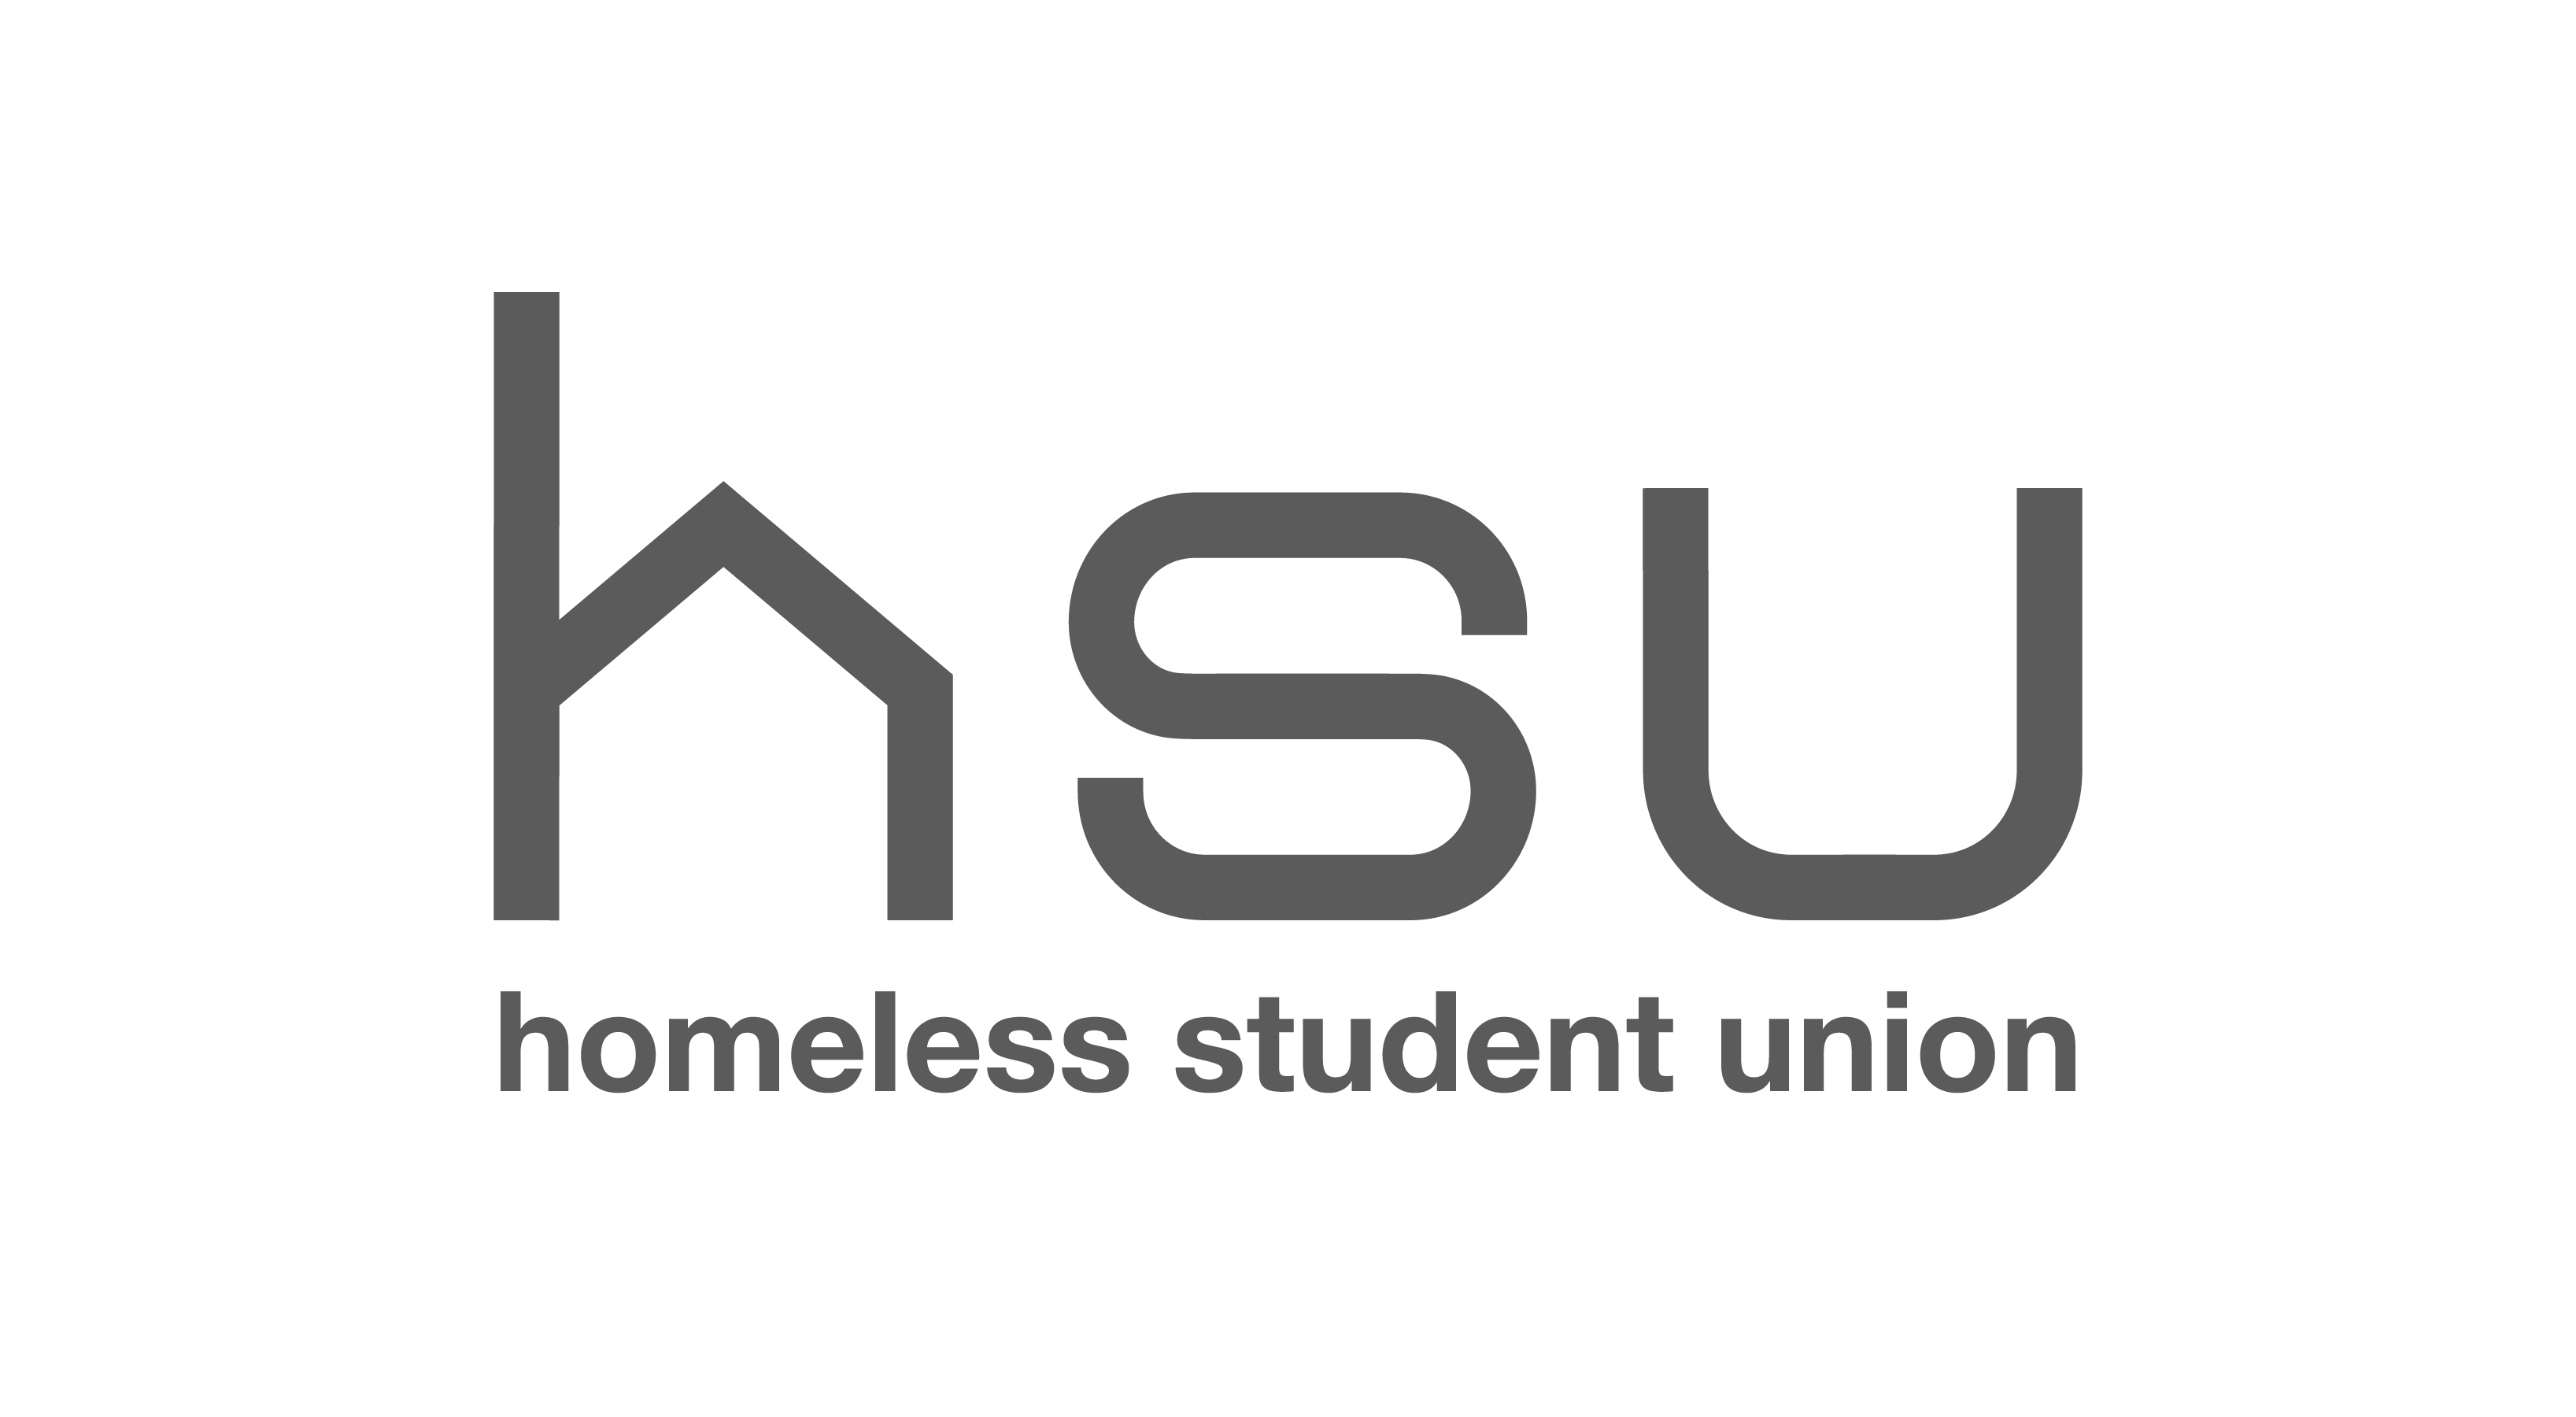 Homeless Student Union Logo